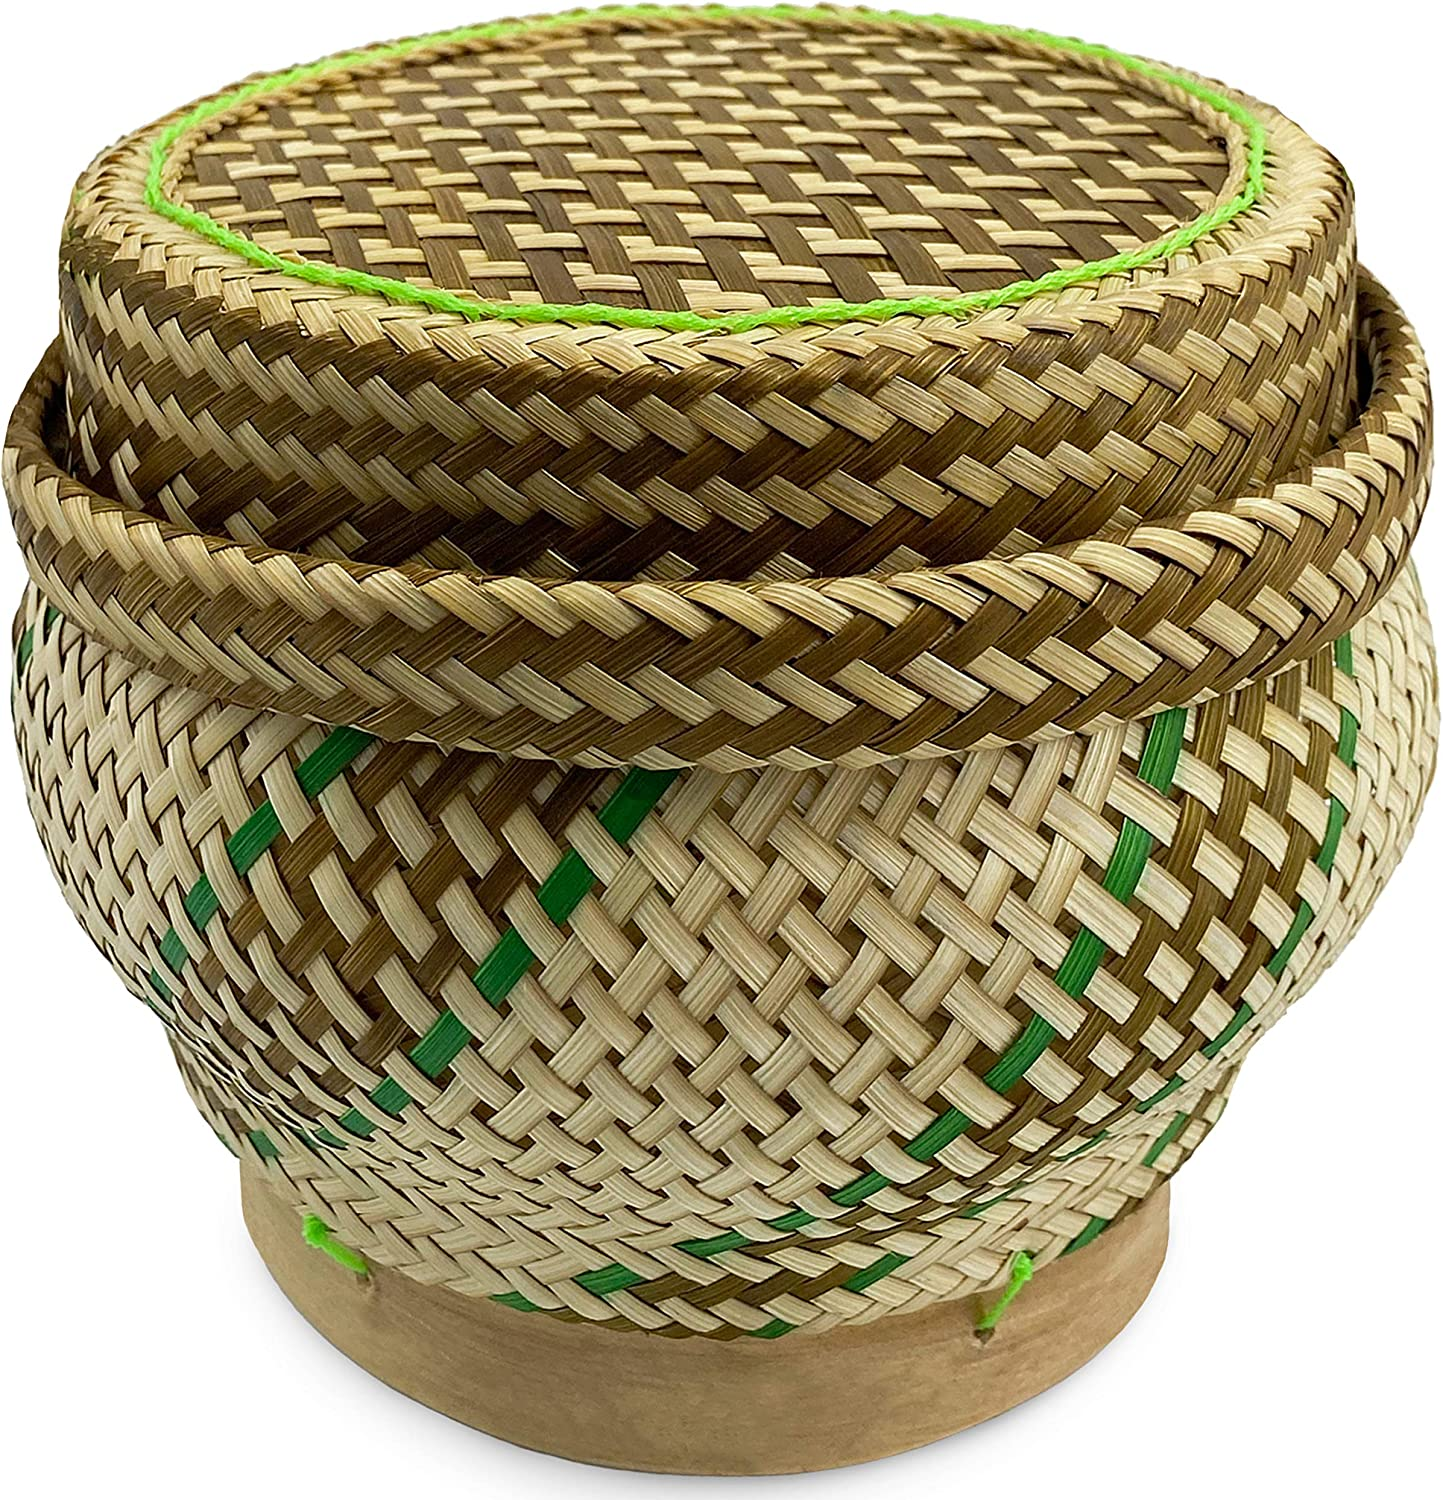 "PANWA Bamboo Sticky Rice Serving Basket Handmade 100% Eco-Friendly Thai Kratip Container - ""Prestige Collection Basil Green"" with Vegetable Plant Based Dye - Food Safe- Family Size - 5 Inch Diameter"